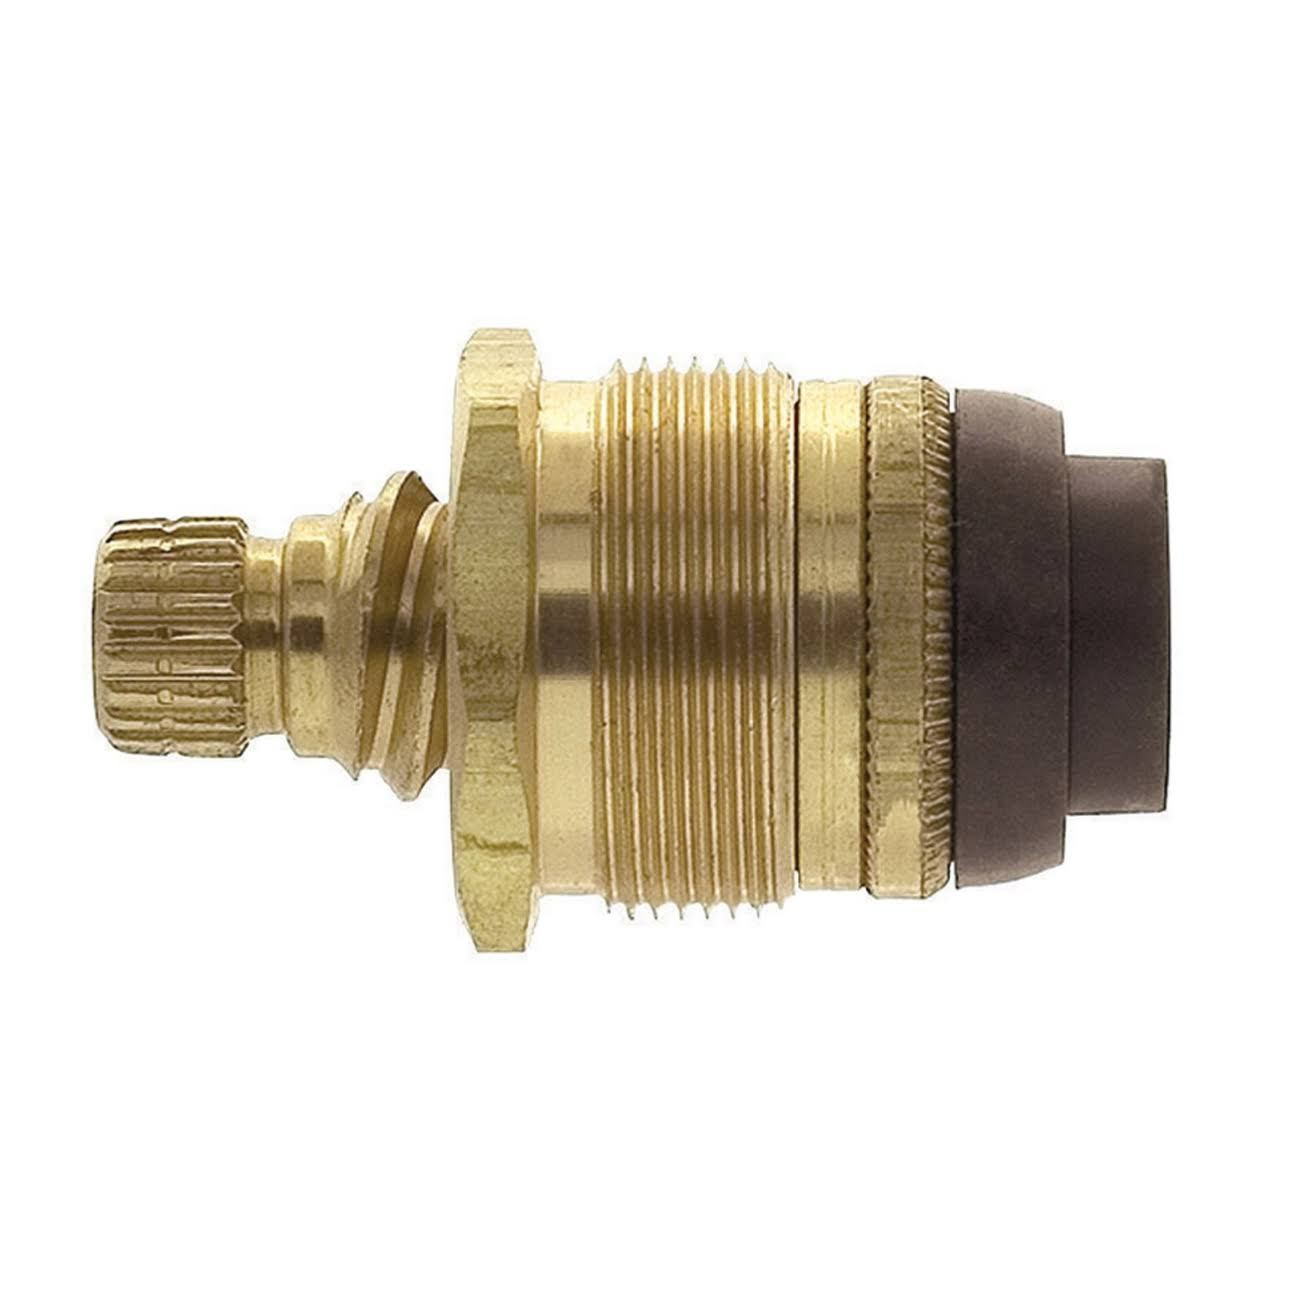 Danco 2K-1C Stem for American Standard LL Faucets